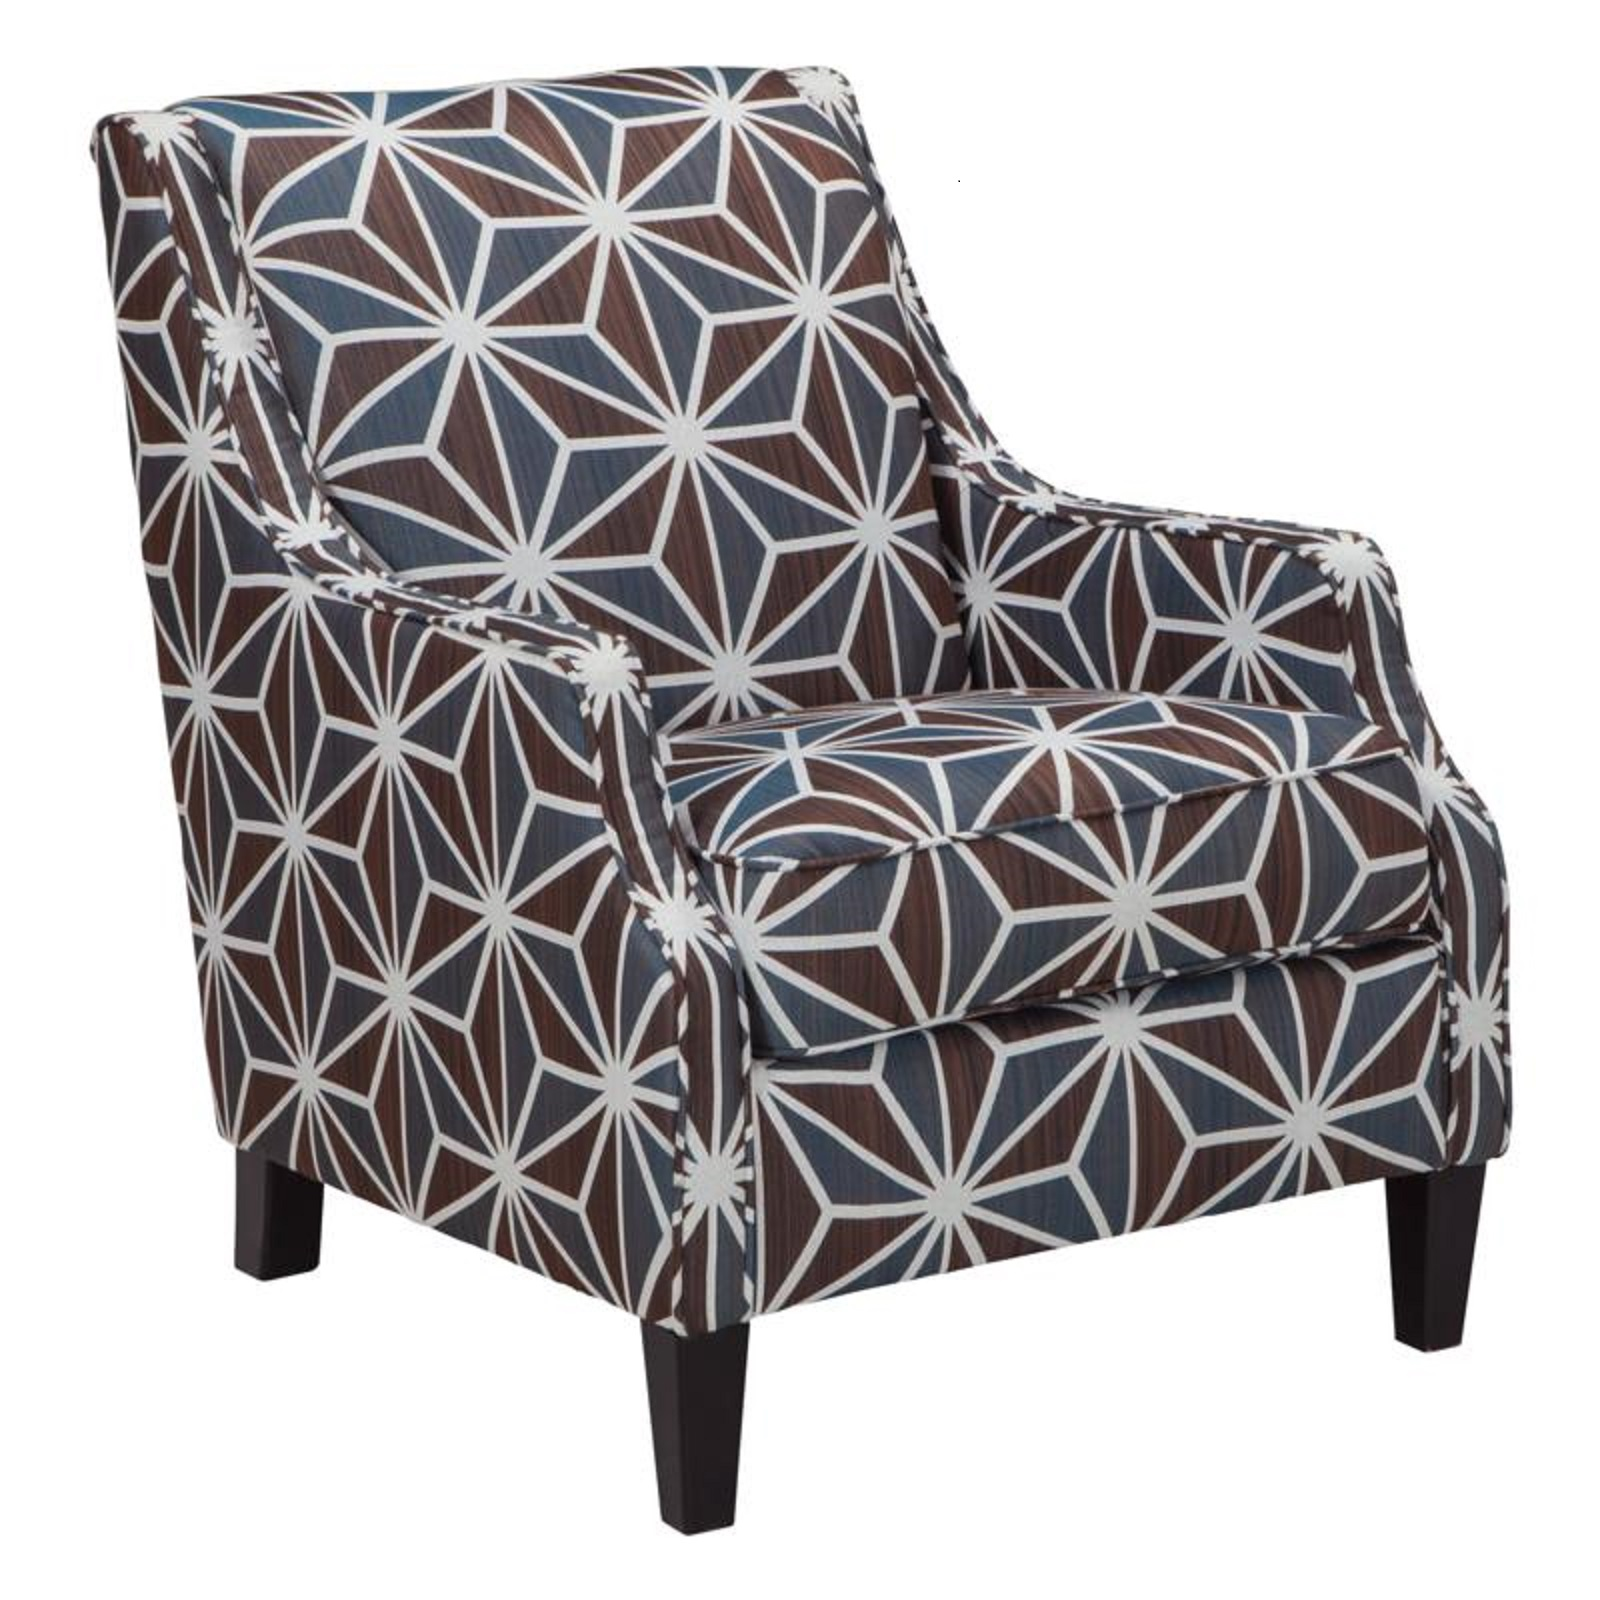 Sears Accent Chairs Signature Design By Ashley 8410221 Brise Accent Chair Sears